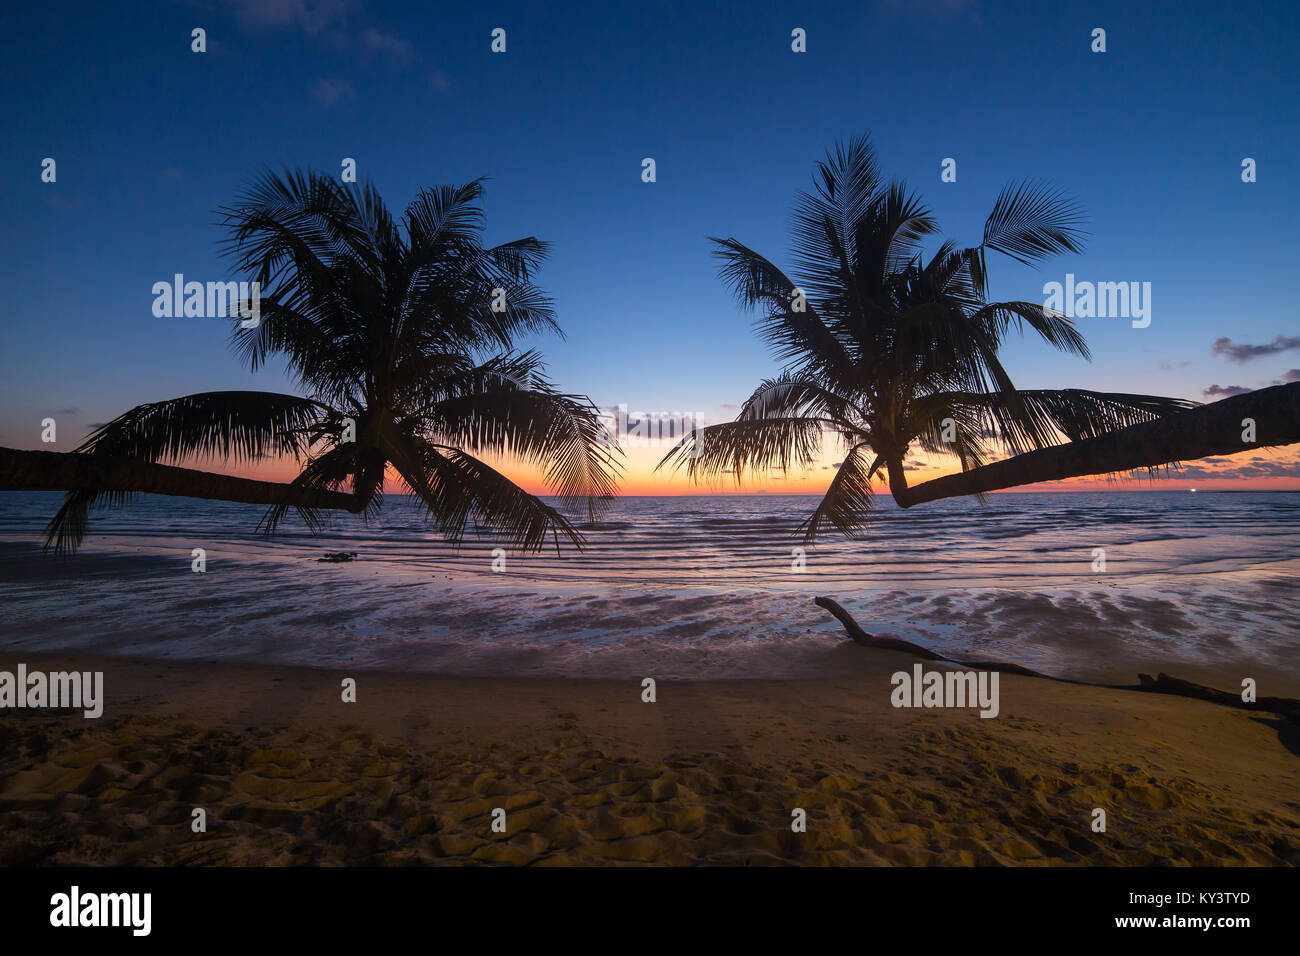 Palm trees during sunset on a beautiful tropical beach on Koh Kood island in Thailand - Stock Image